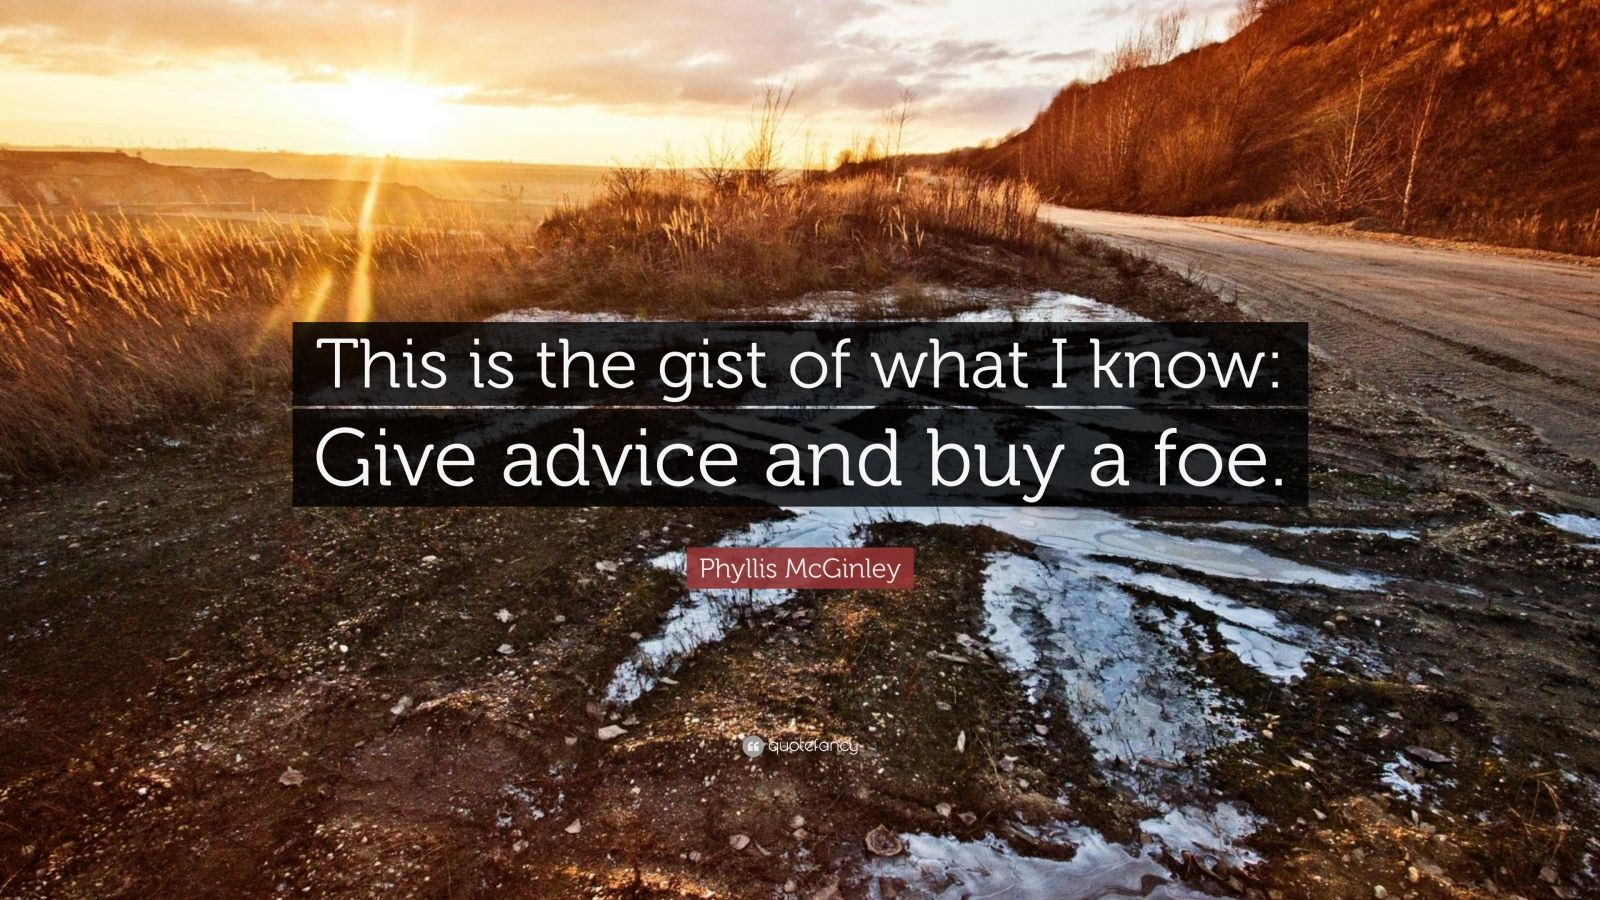 """Phyllis McGinley Quote: """"This is the gist of what I know: Give advice and buy a foe."""""""